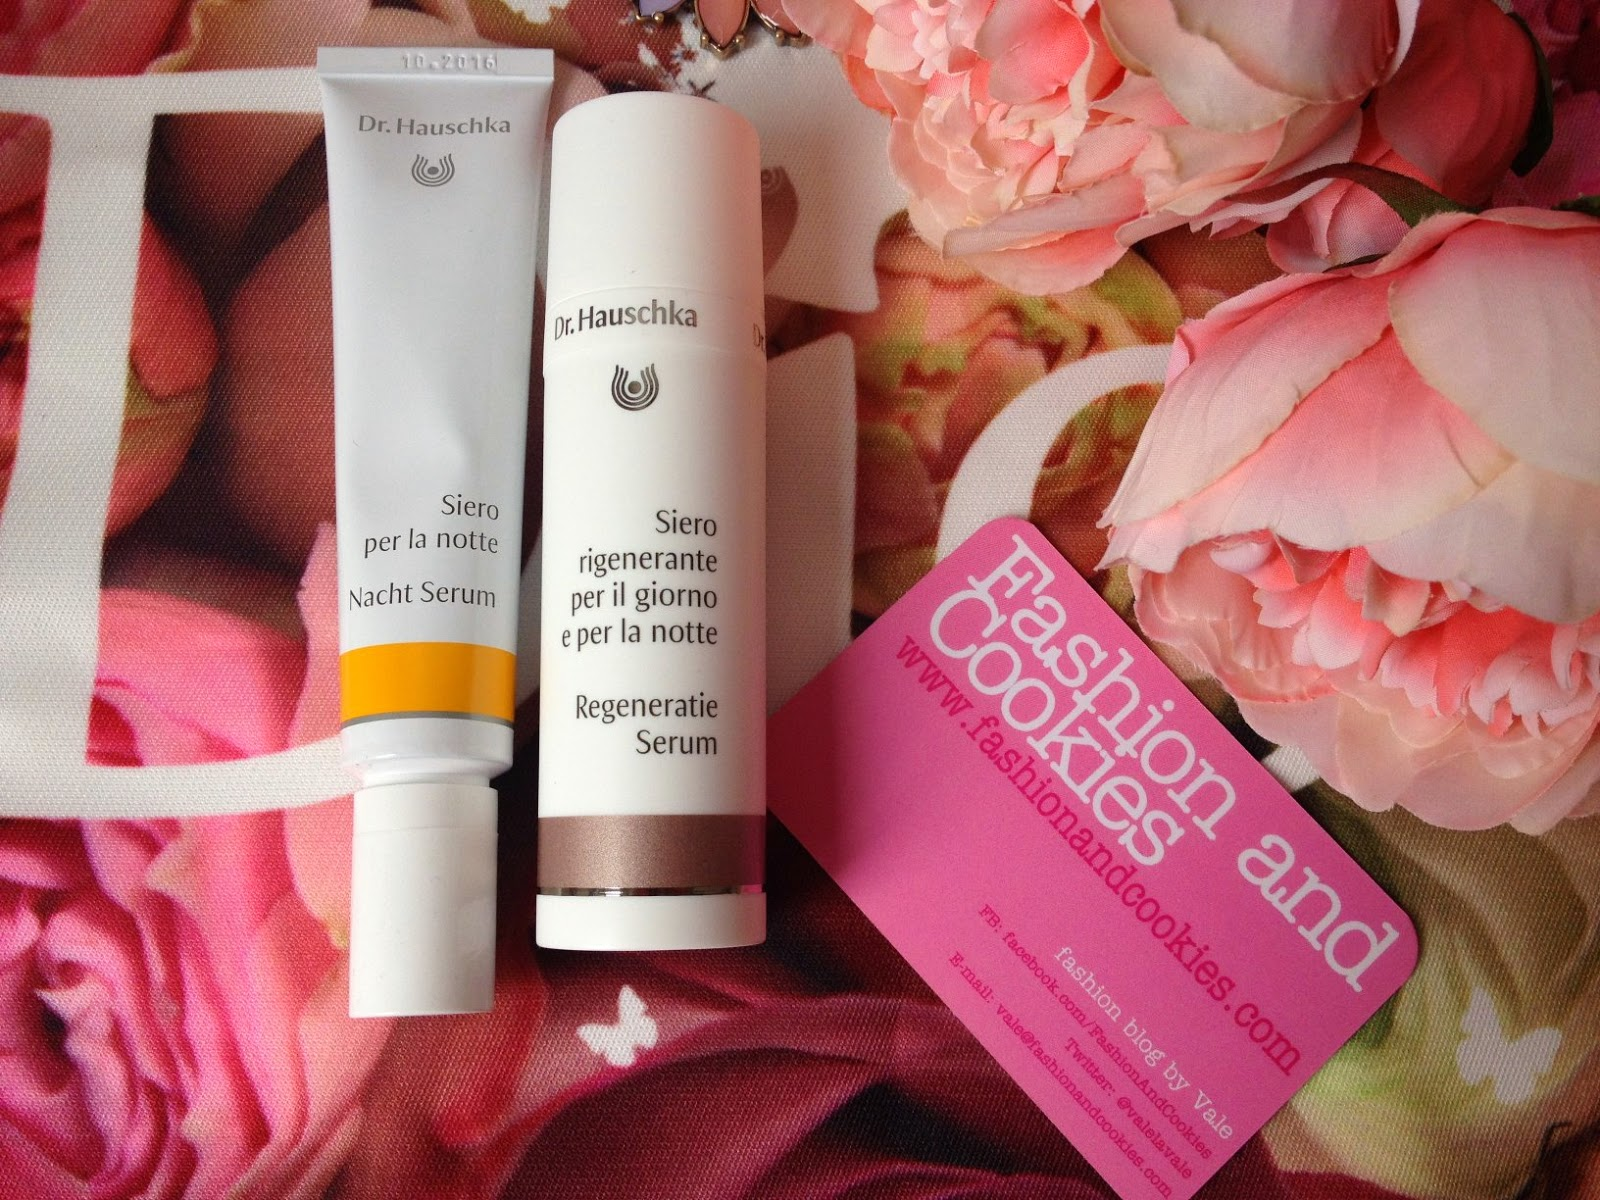 Best skincare products, best serums, night serum, Dr. Hauschka siero per la notte, Dr. Hauschka night serum, Moliabal Milano, Moliabal Milano hair accessories, Fashion and Cookies fashion blog, fashion blogger